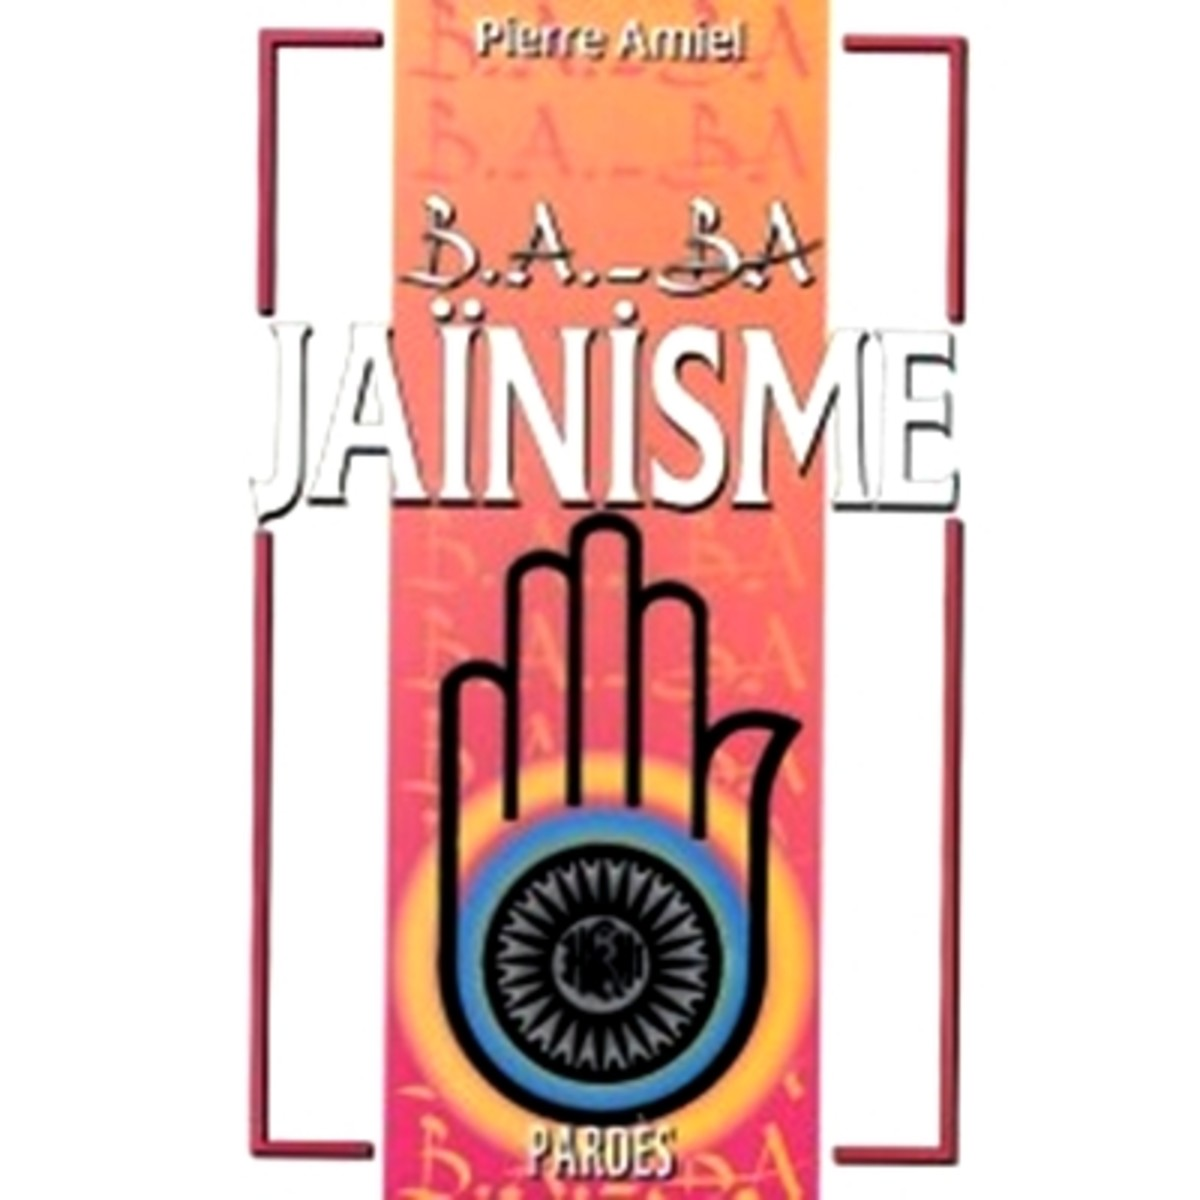 Ba Ba Jainisme (Basics of Jainism) by Pierre Amiel